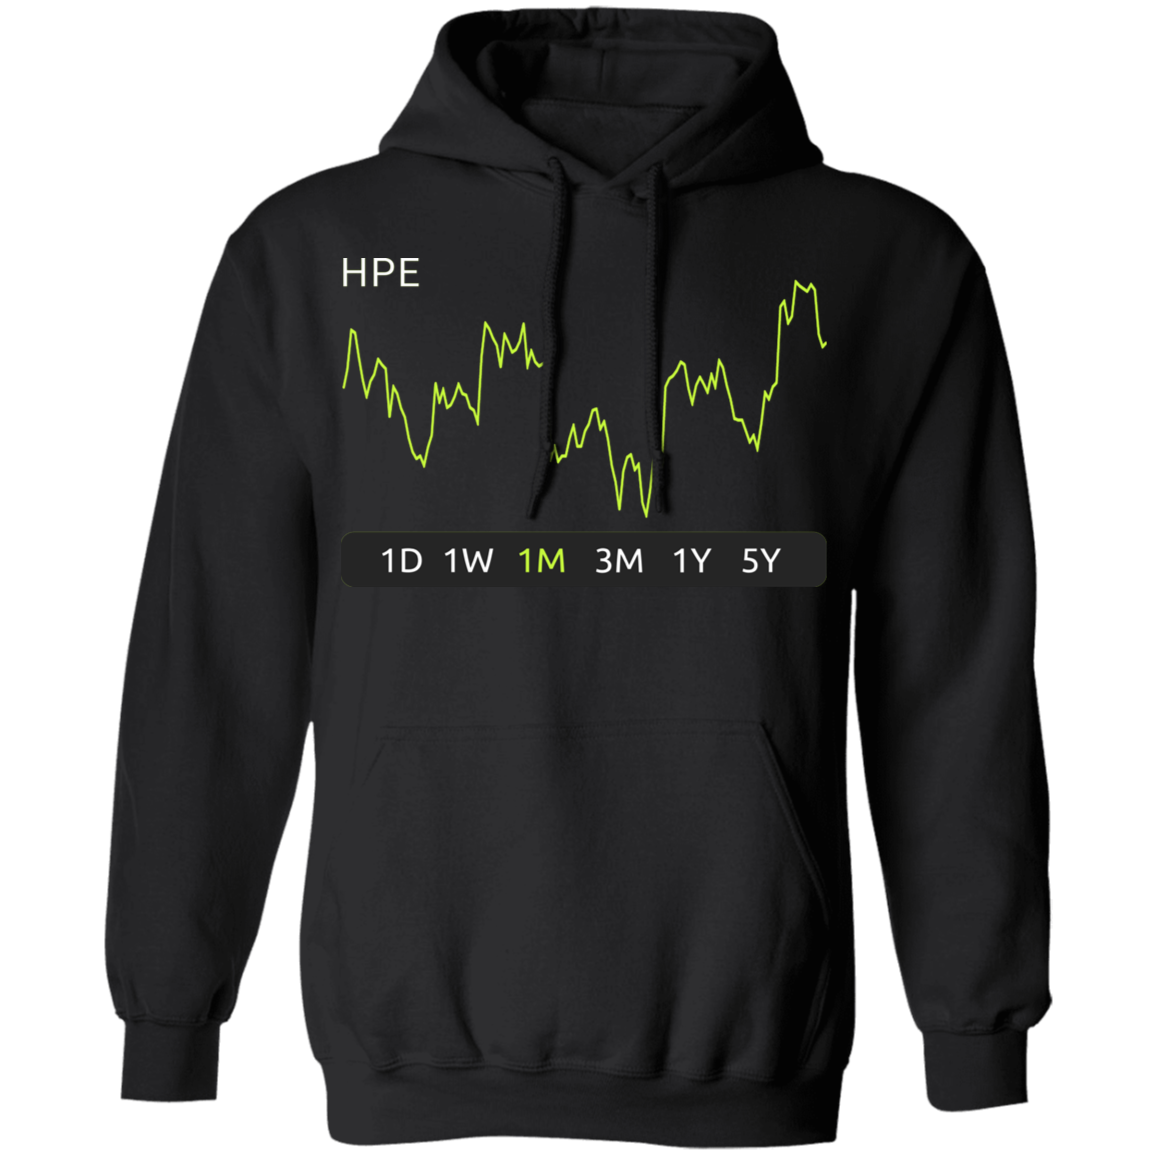 HPE Stock 1m Pullover Hoodie